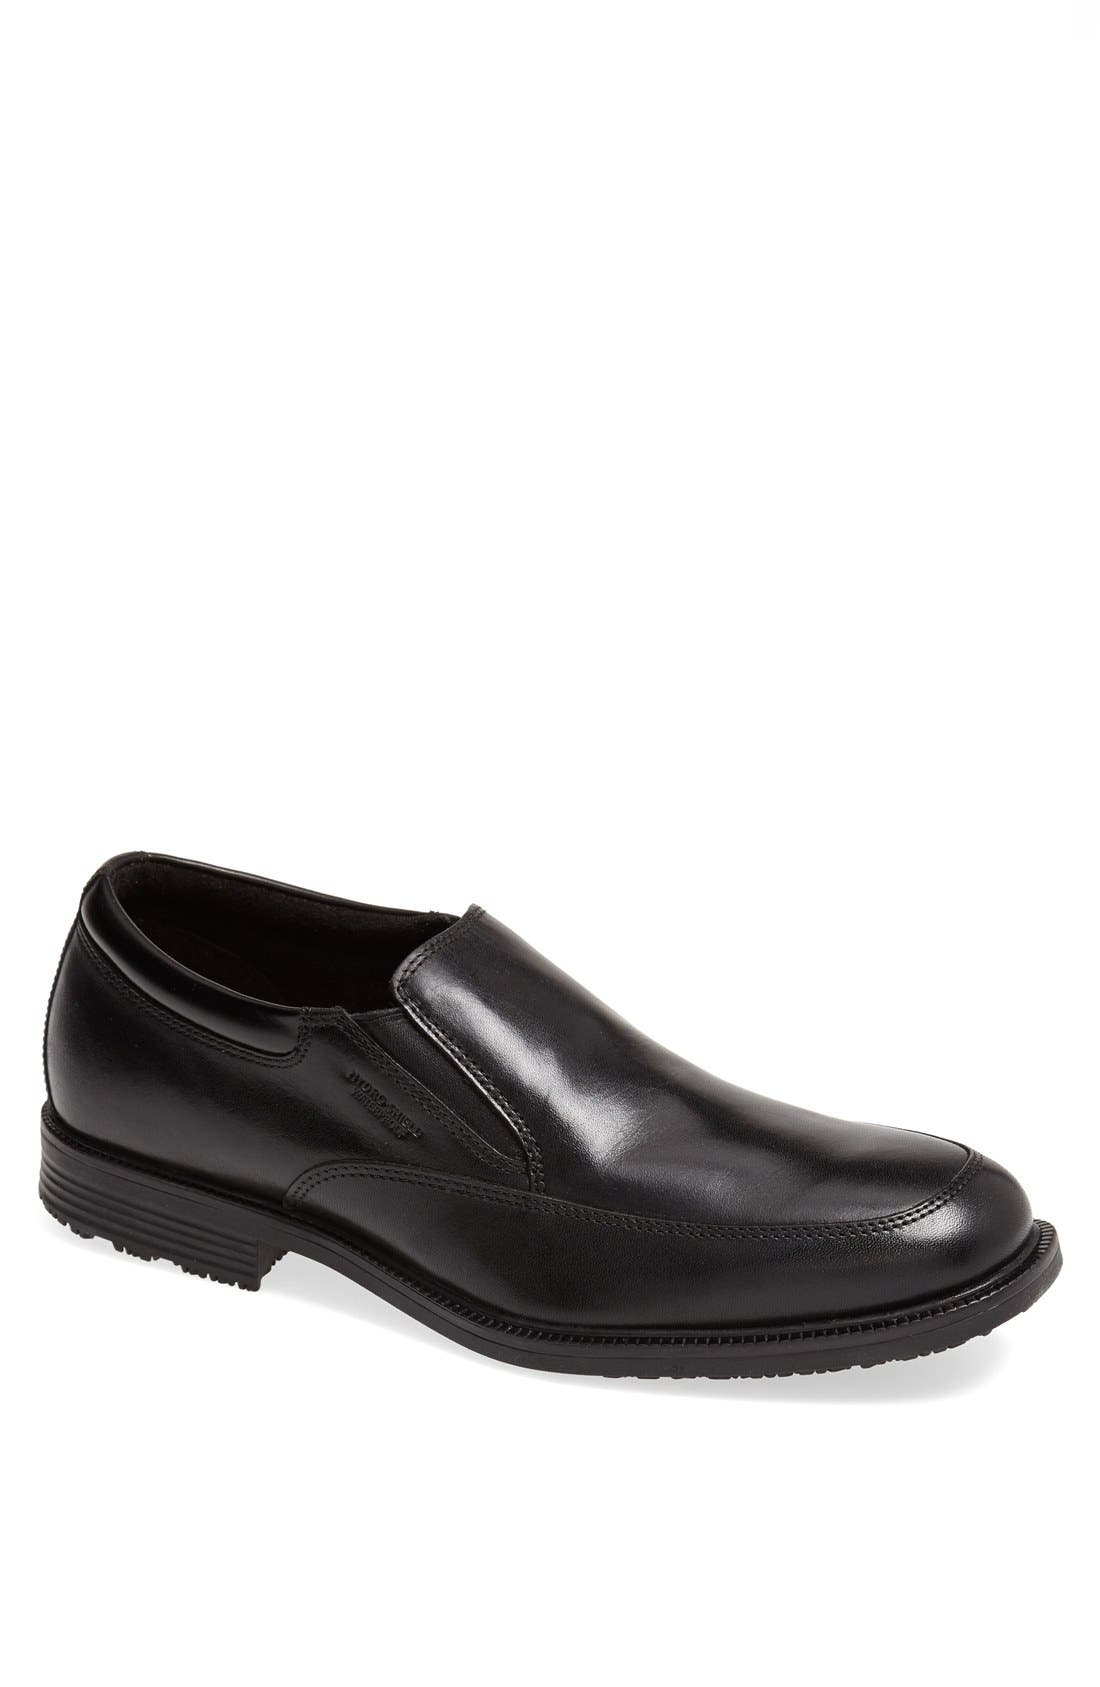 'Essential Details' Waterproof Loafer,                         Main,                         color, BLACK